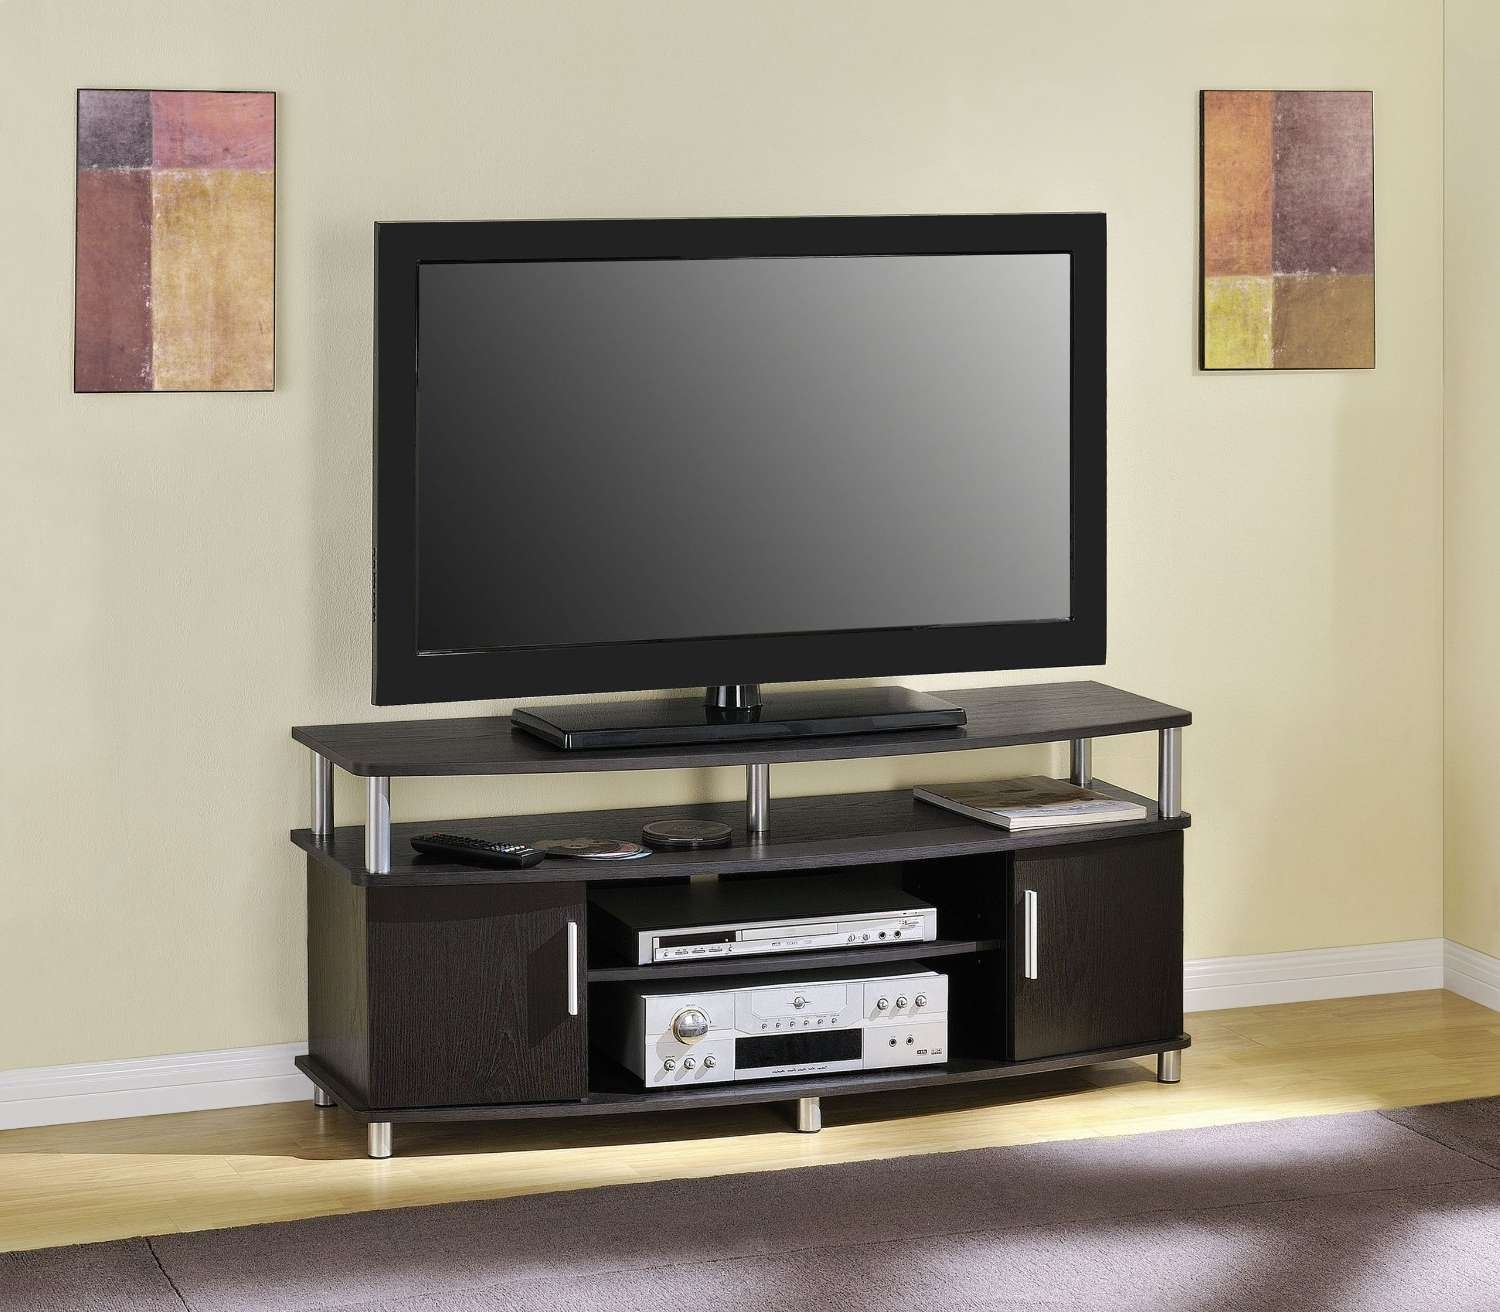 Grand Wall Unit For Modern Living Room Decor Ideas Exposing Glossy In Tv Stands For Small Spaces (View 8 of 15)